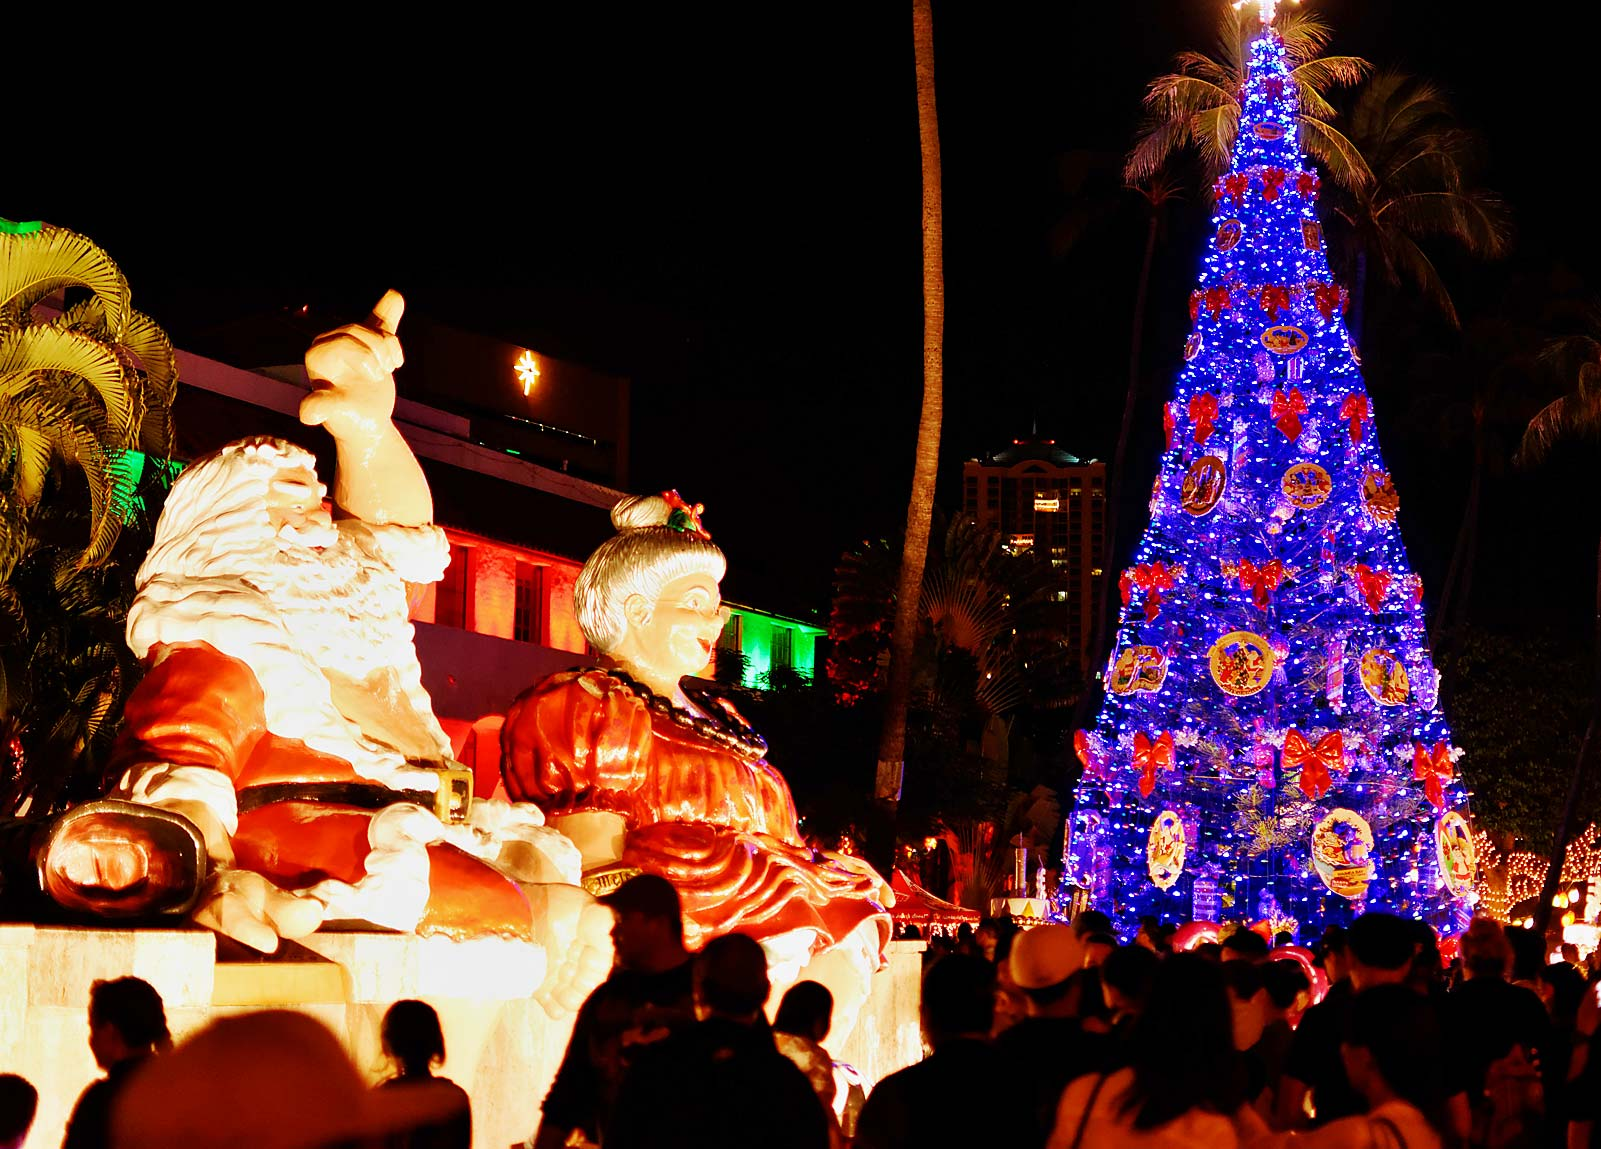 Hawaii Christmas Vacation Package 2020 Christmas in Hawaii 2020   Hawaii Christmas Vacation Packages